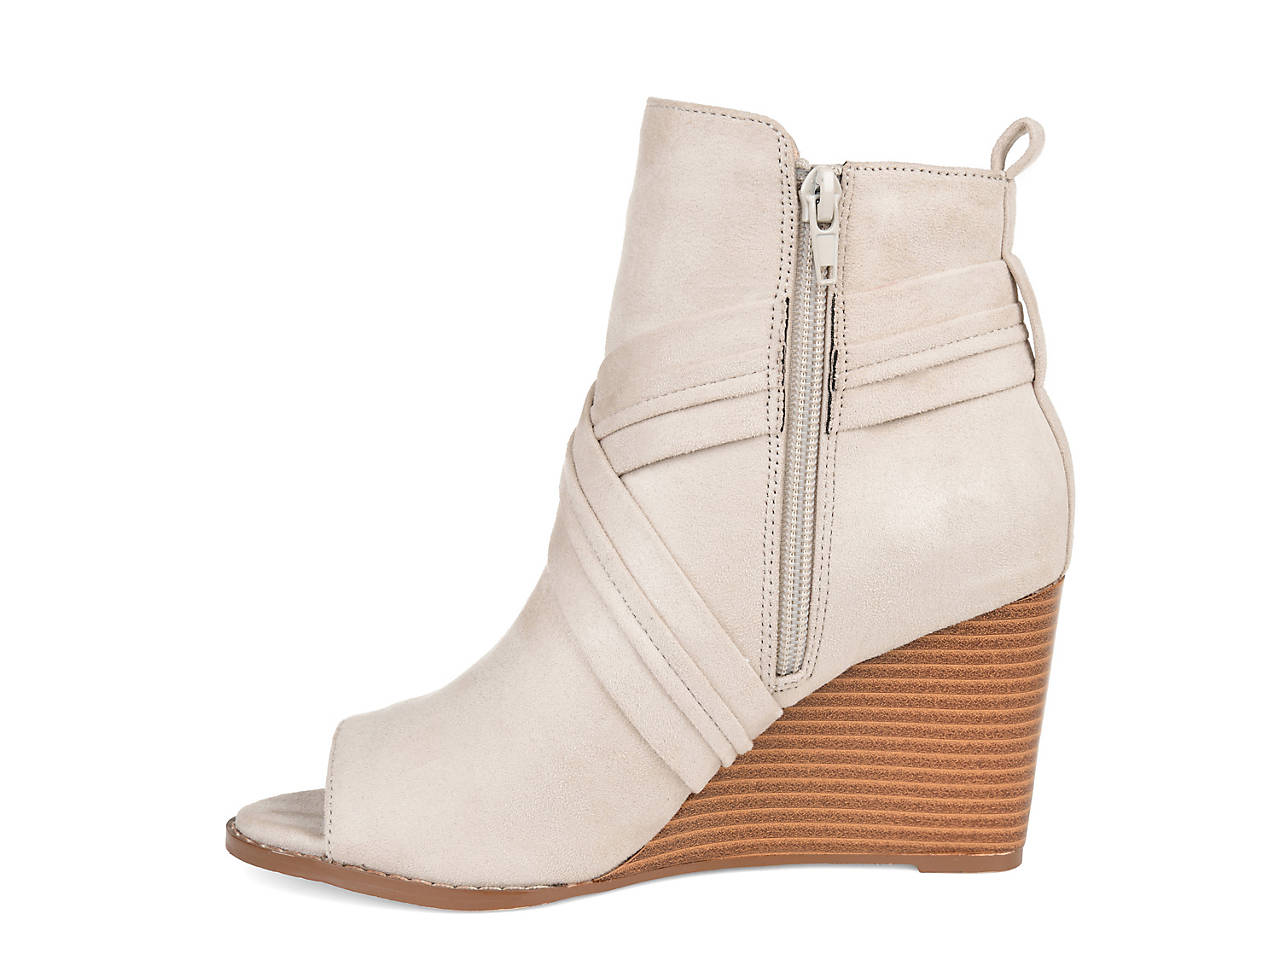 4e73e44f3ee Journee Collection Sabeena Wedge Bootie Women s Shoes